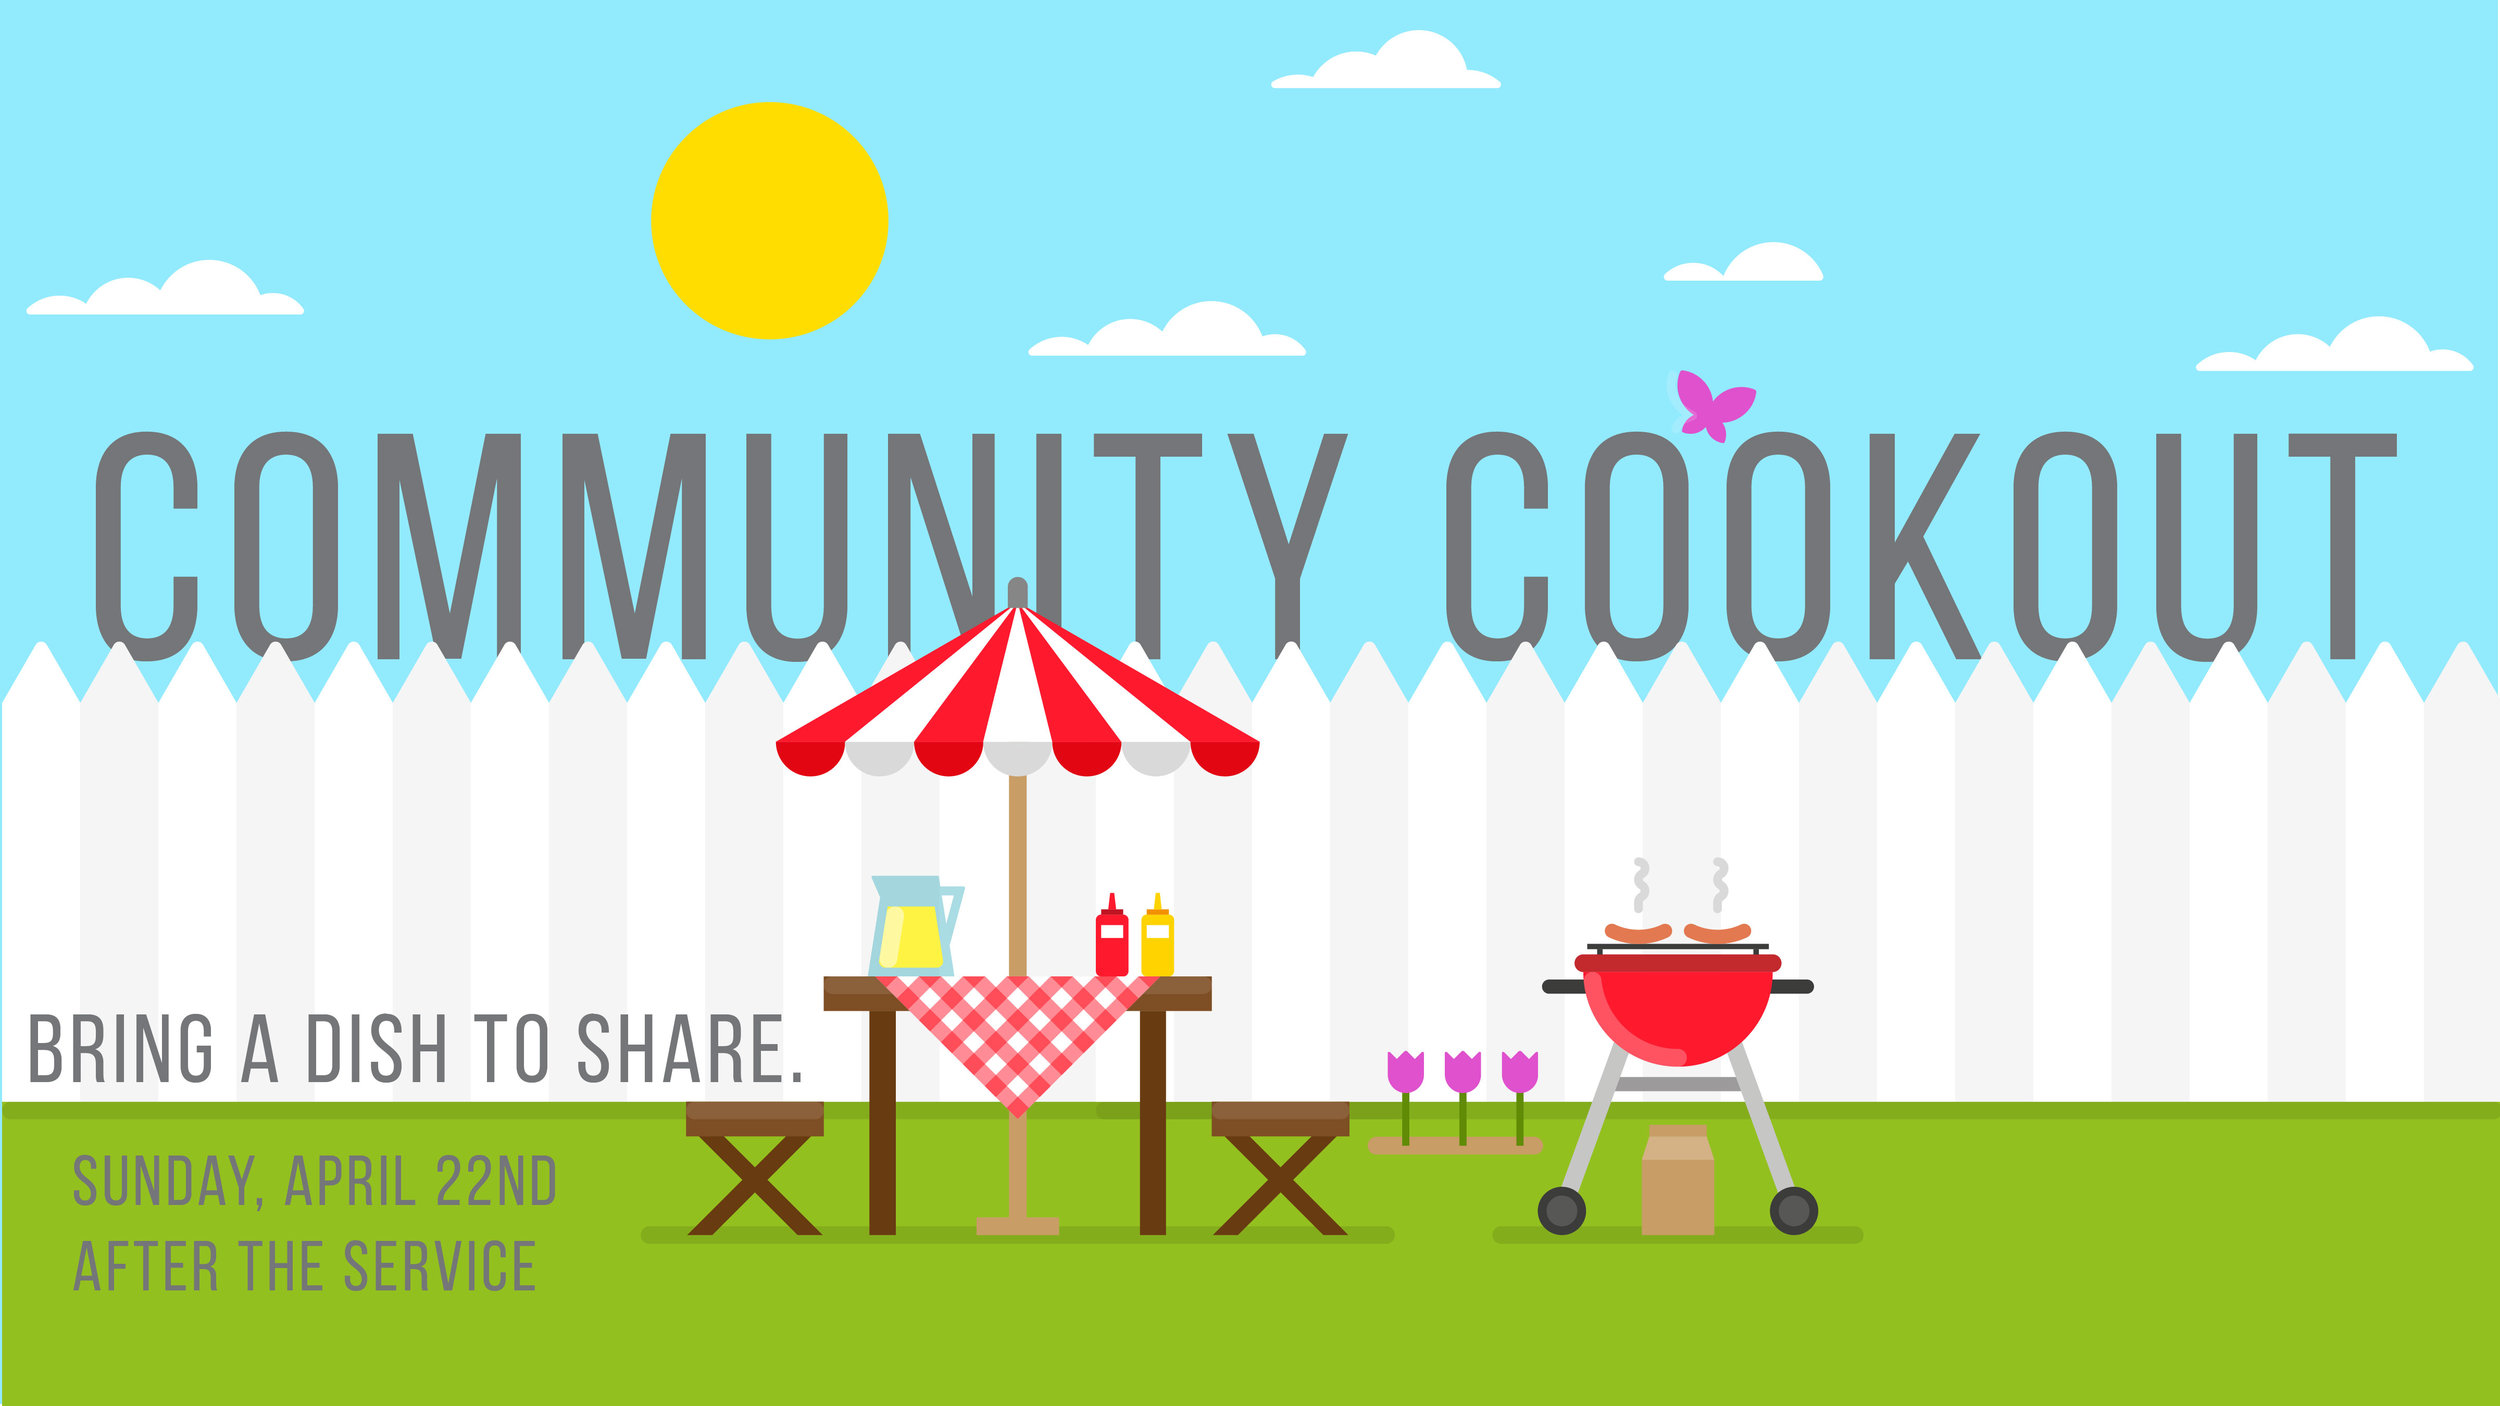 Community Cookout-01.jpg